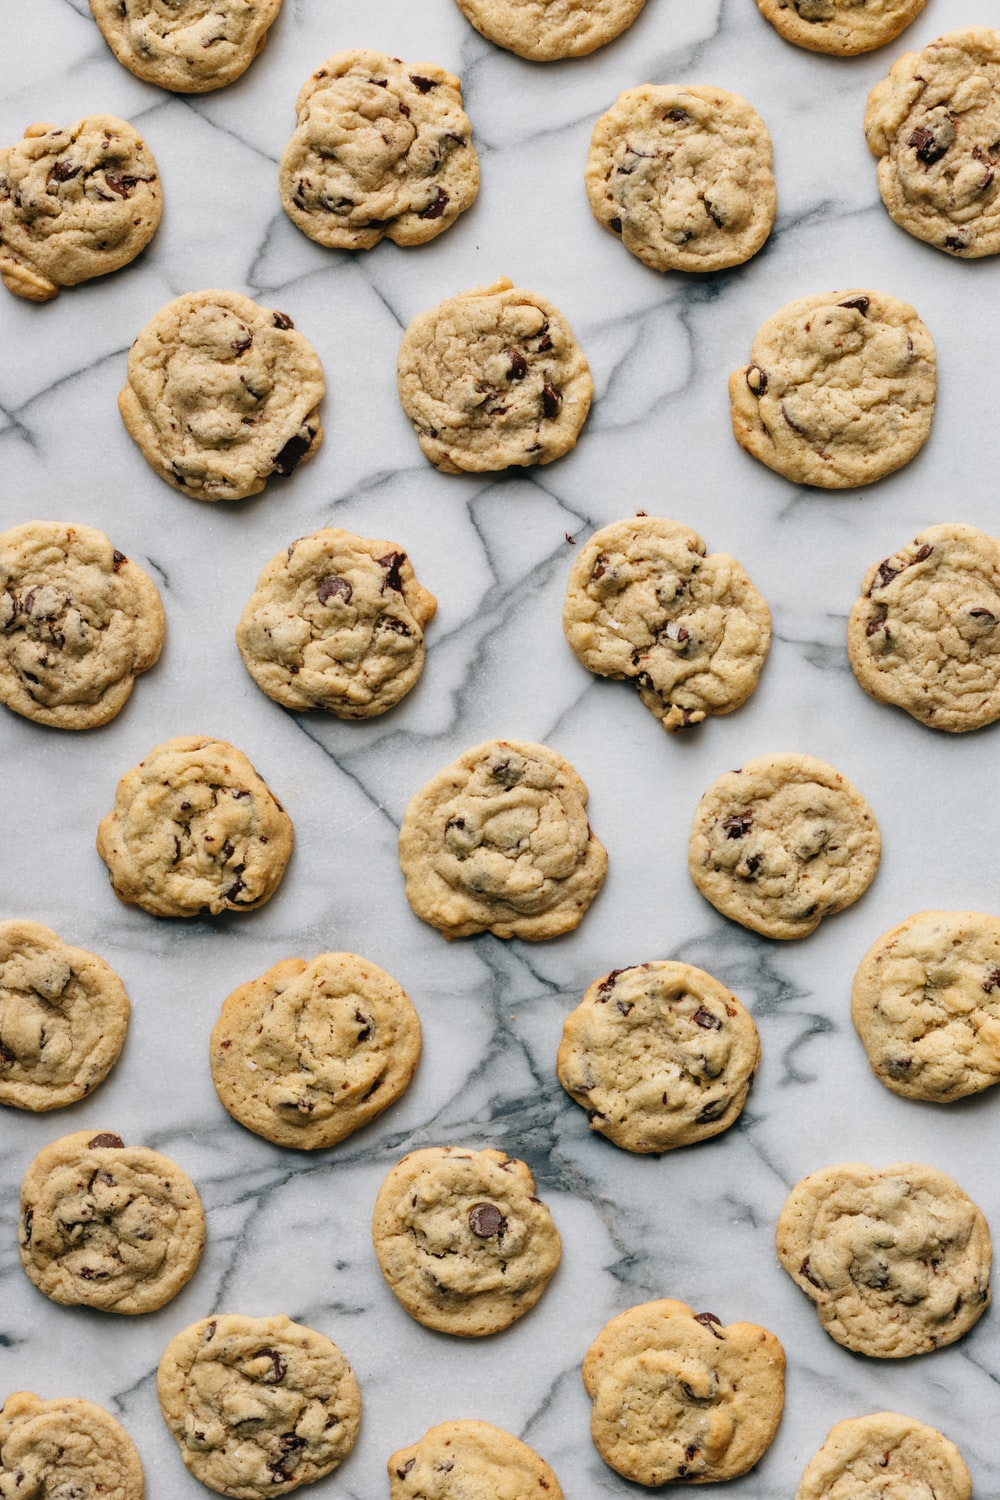 baked cookies on white concrete surface